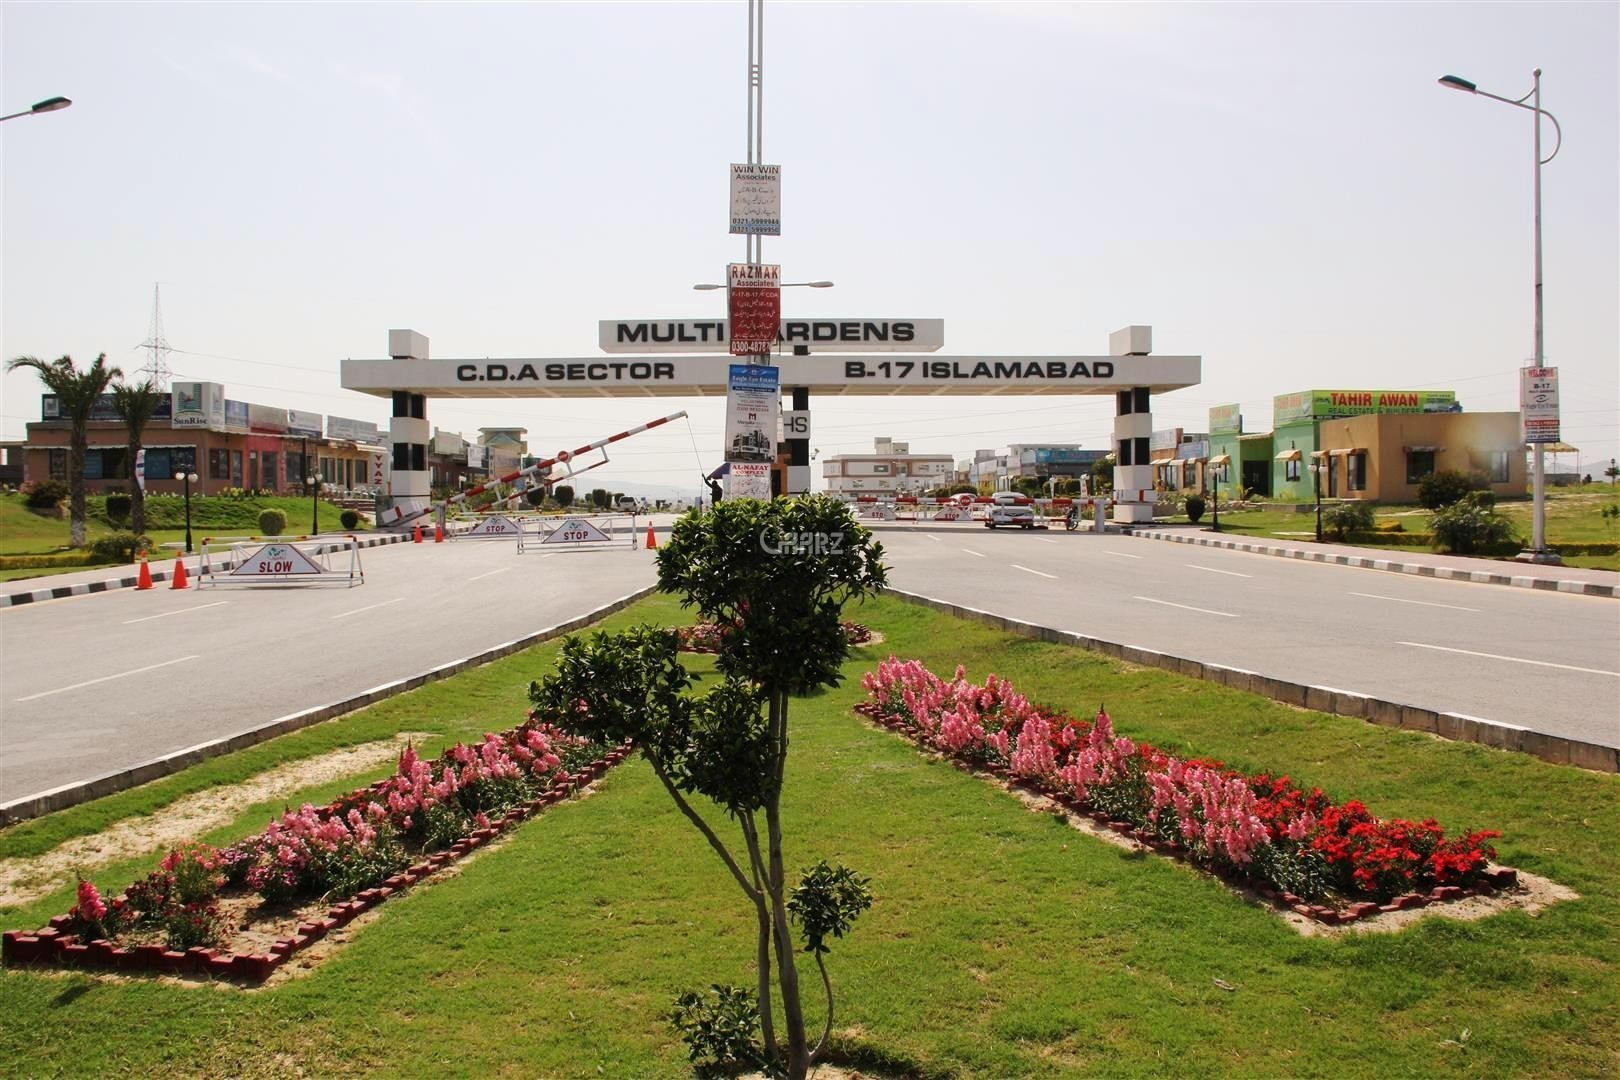 12 Marla Plot in B-17 Block-D, Islamabad is for Sale